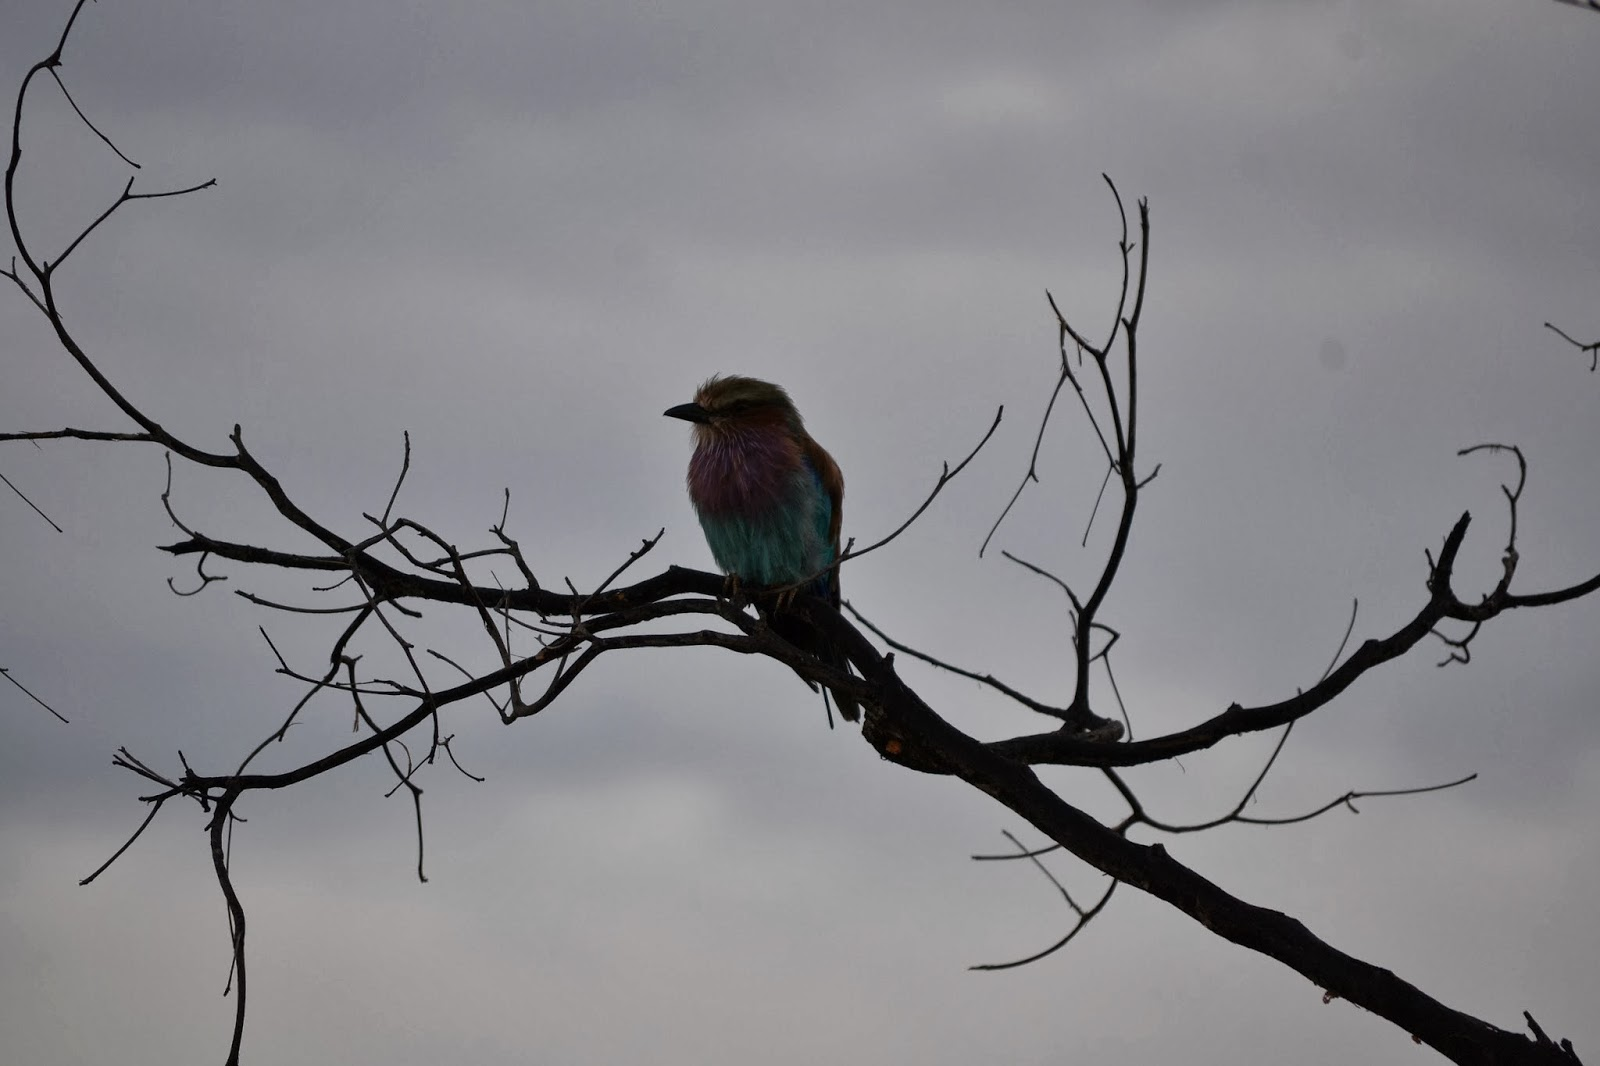 lilac breasted roller against a cloudy sky